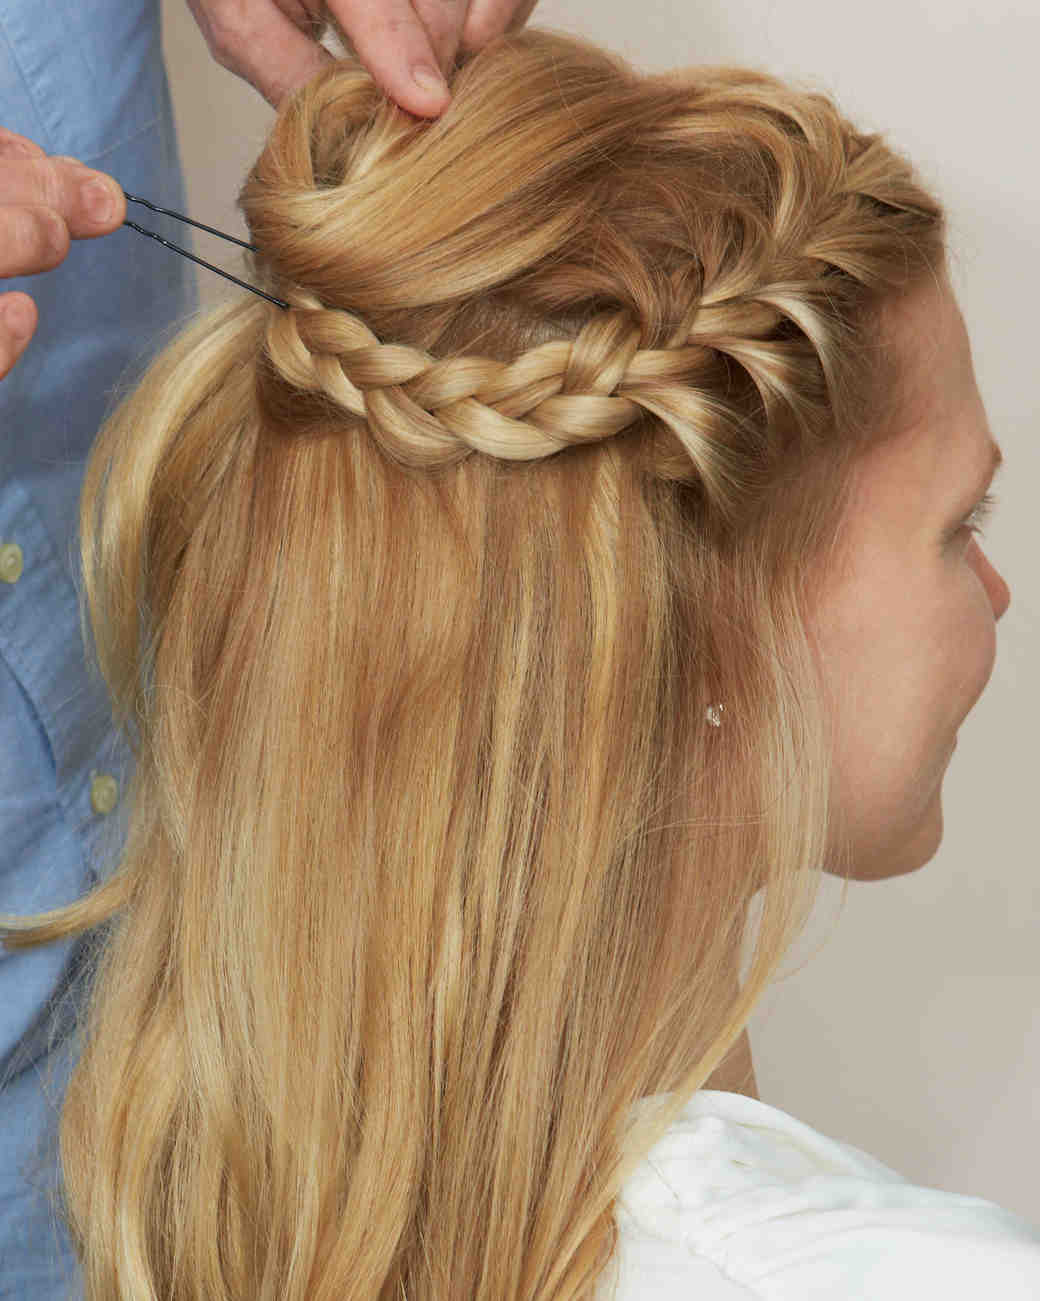 hair-prep-braid-111-wd110254.jpg